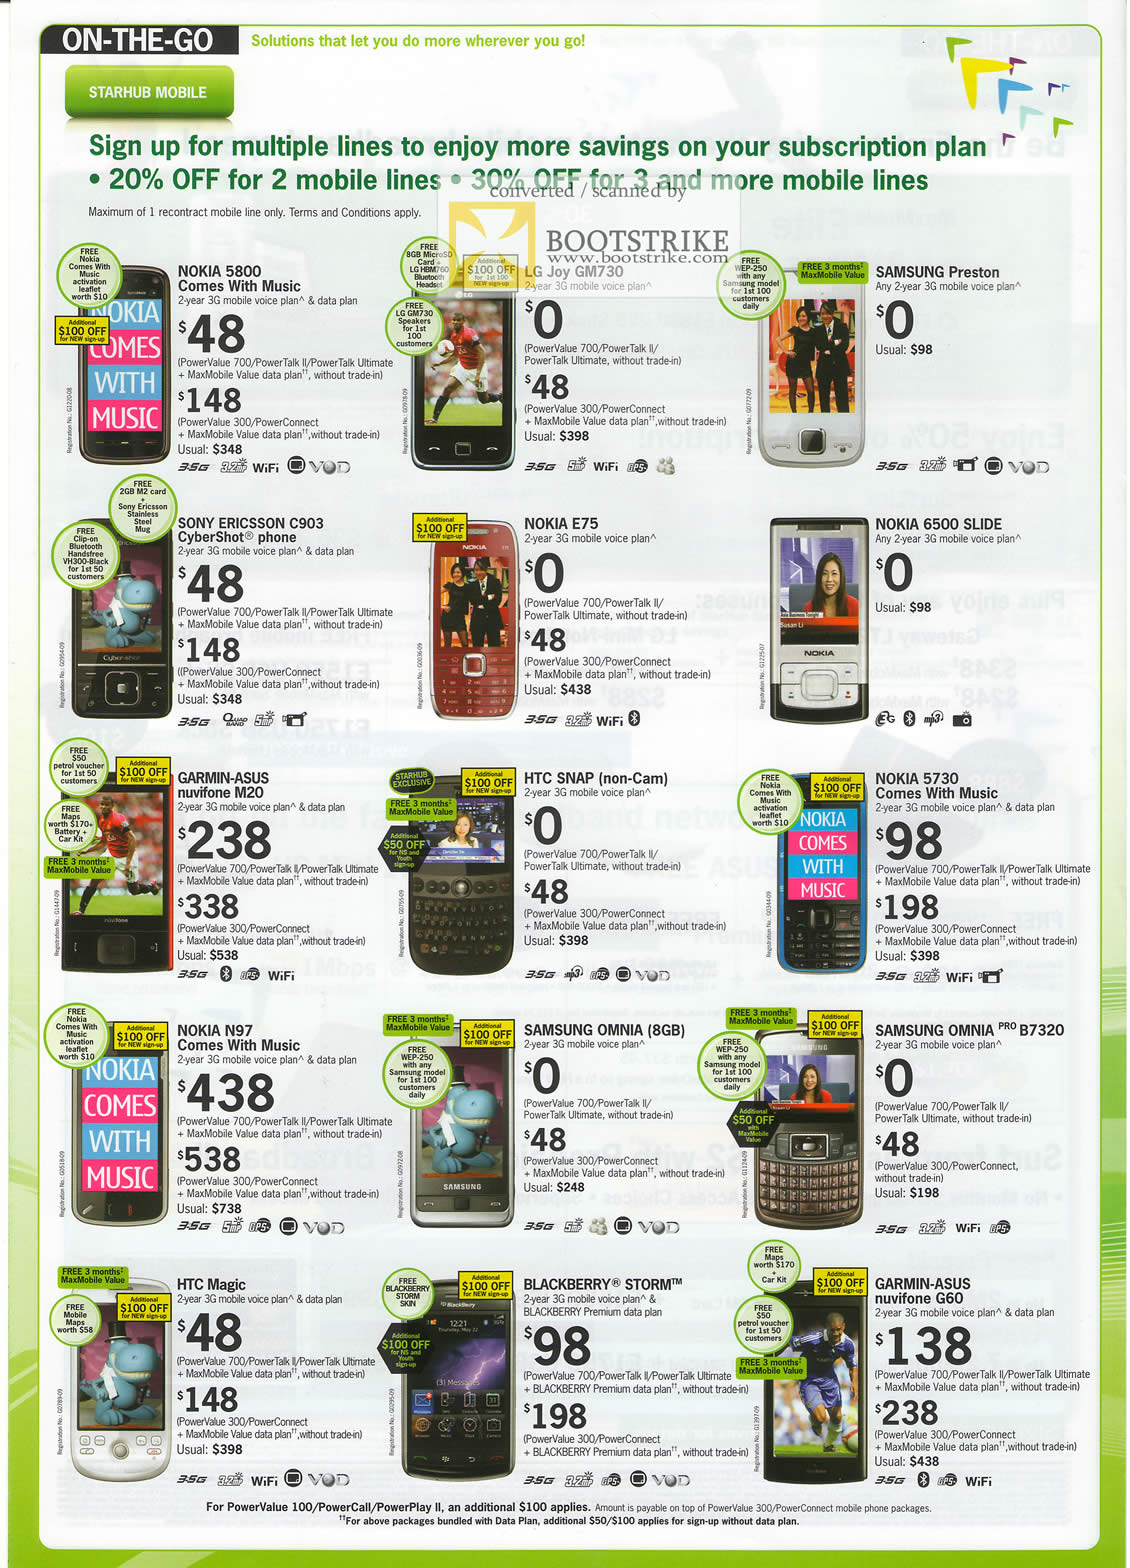 Comex 2009 price list image brochure of Starhub Mobile Phones Nokia LG Samsung Sony Ericsson Garmin ASUS